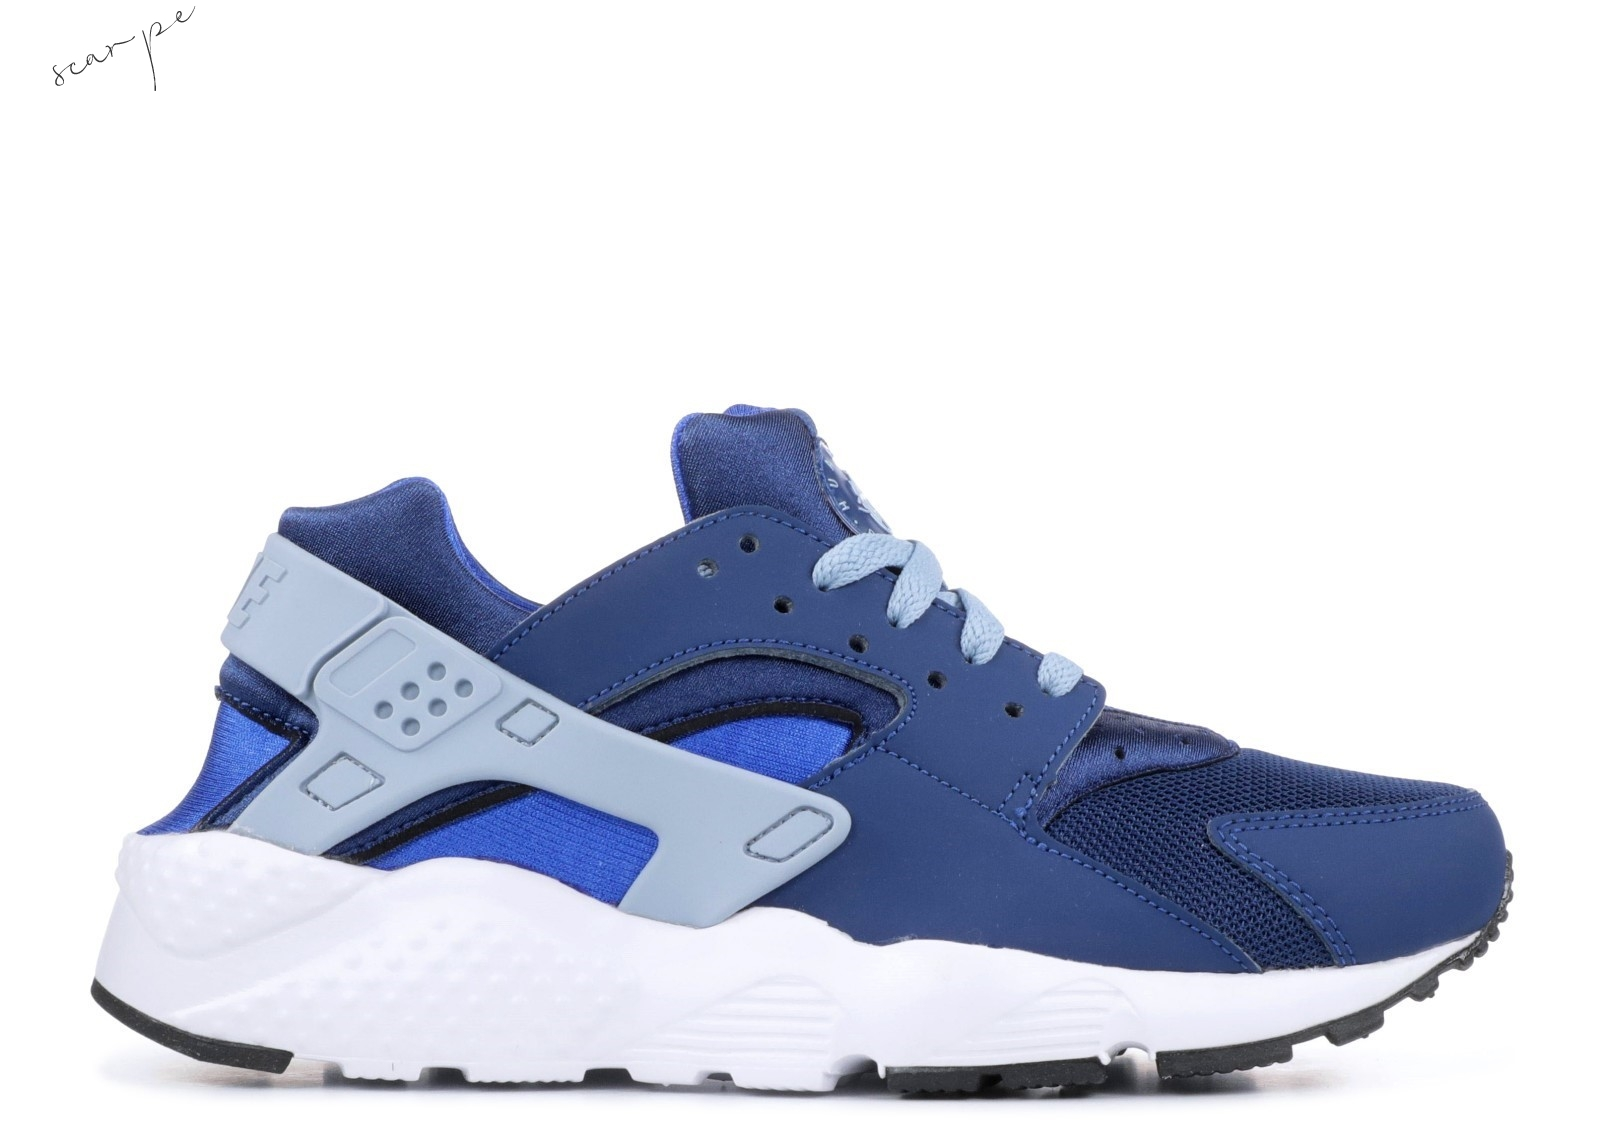 Vendite Nike Air Huarache Run Gs Navy (654275-406) Scarpe Online